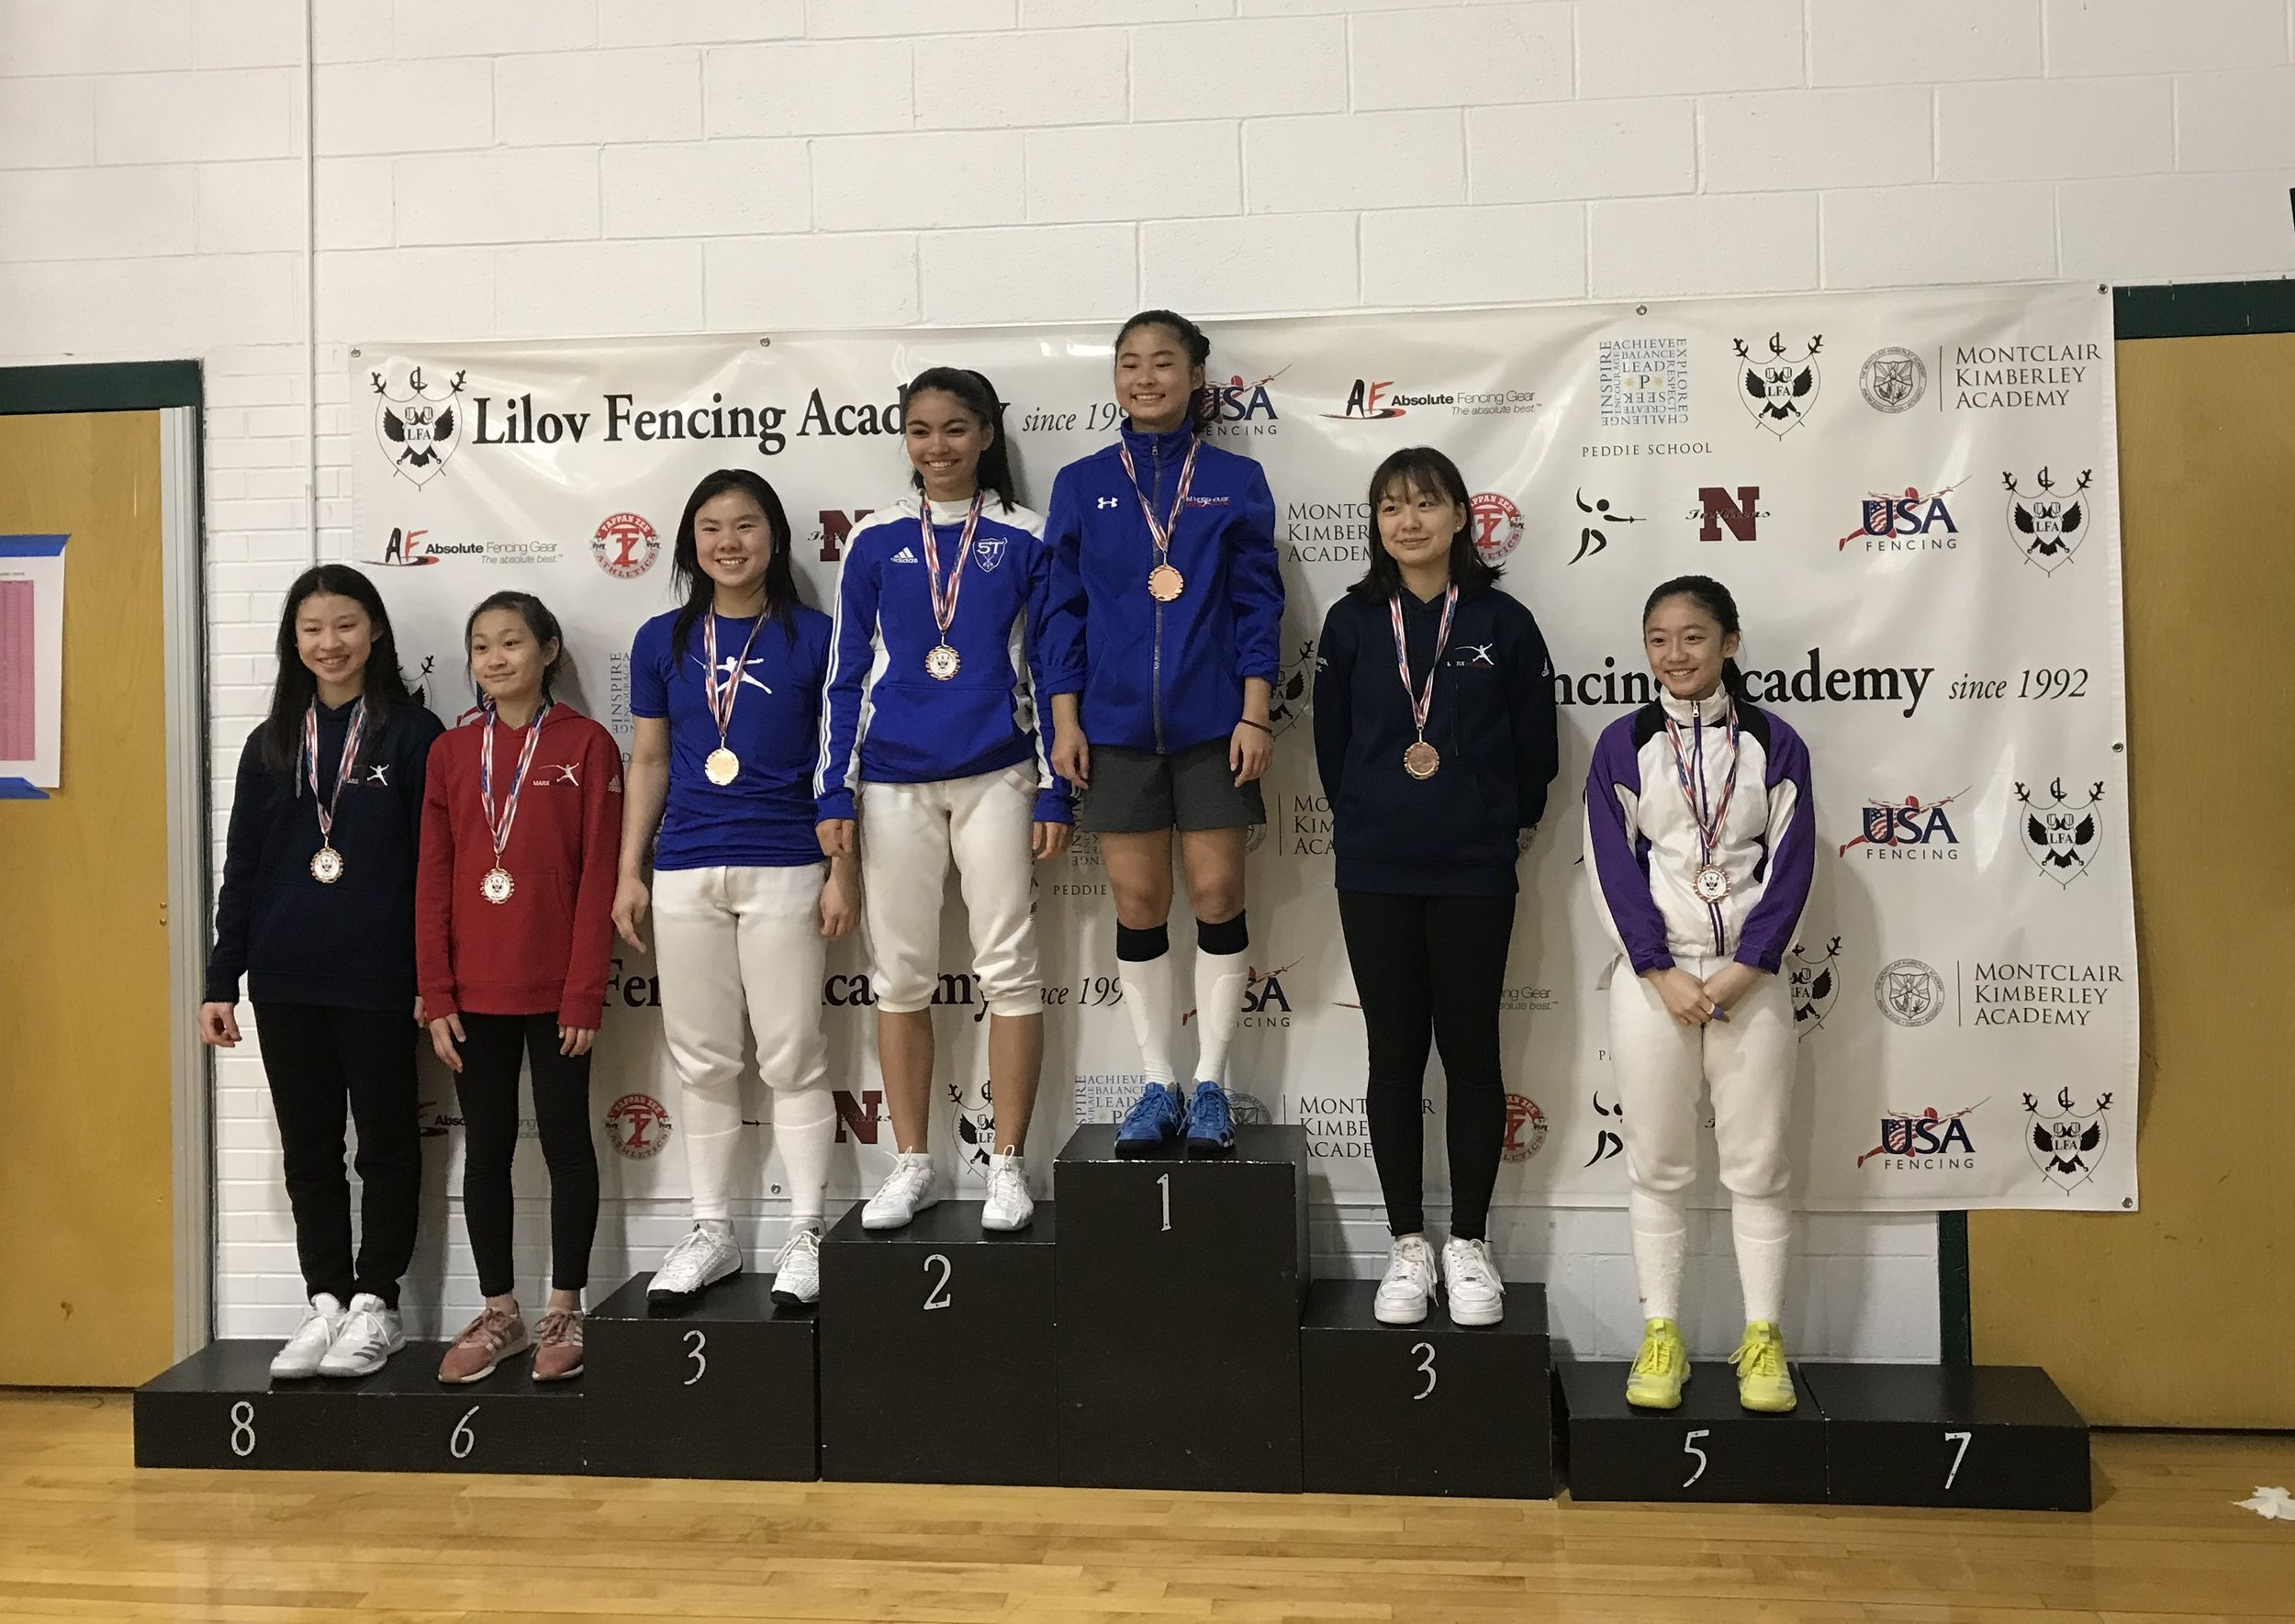 Pictured: Sabrina Fang wins a Gold Medal, and Bethany Lee wins a Bronze Medal in Cadet Women's Foil